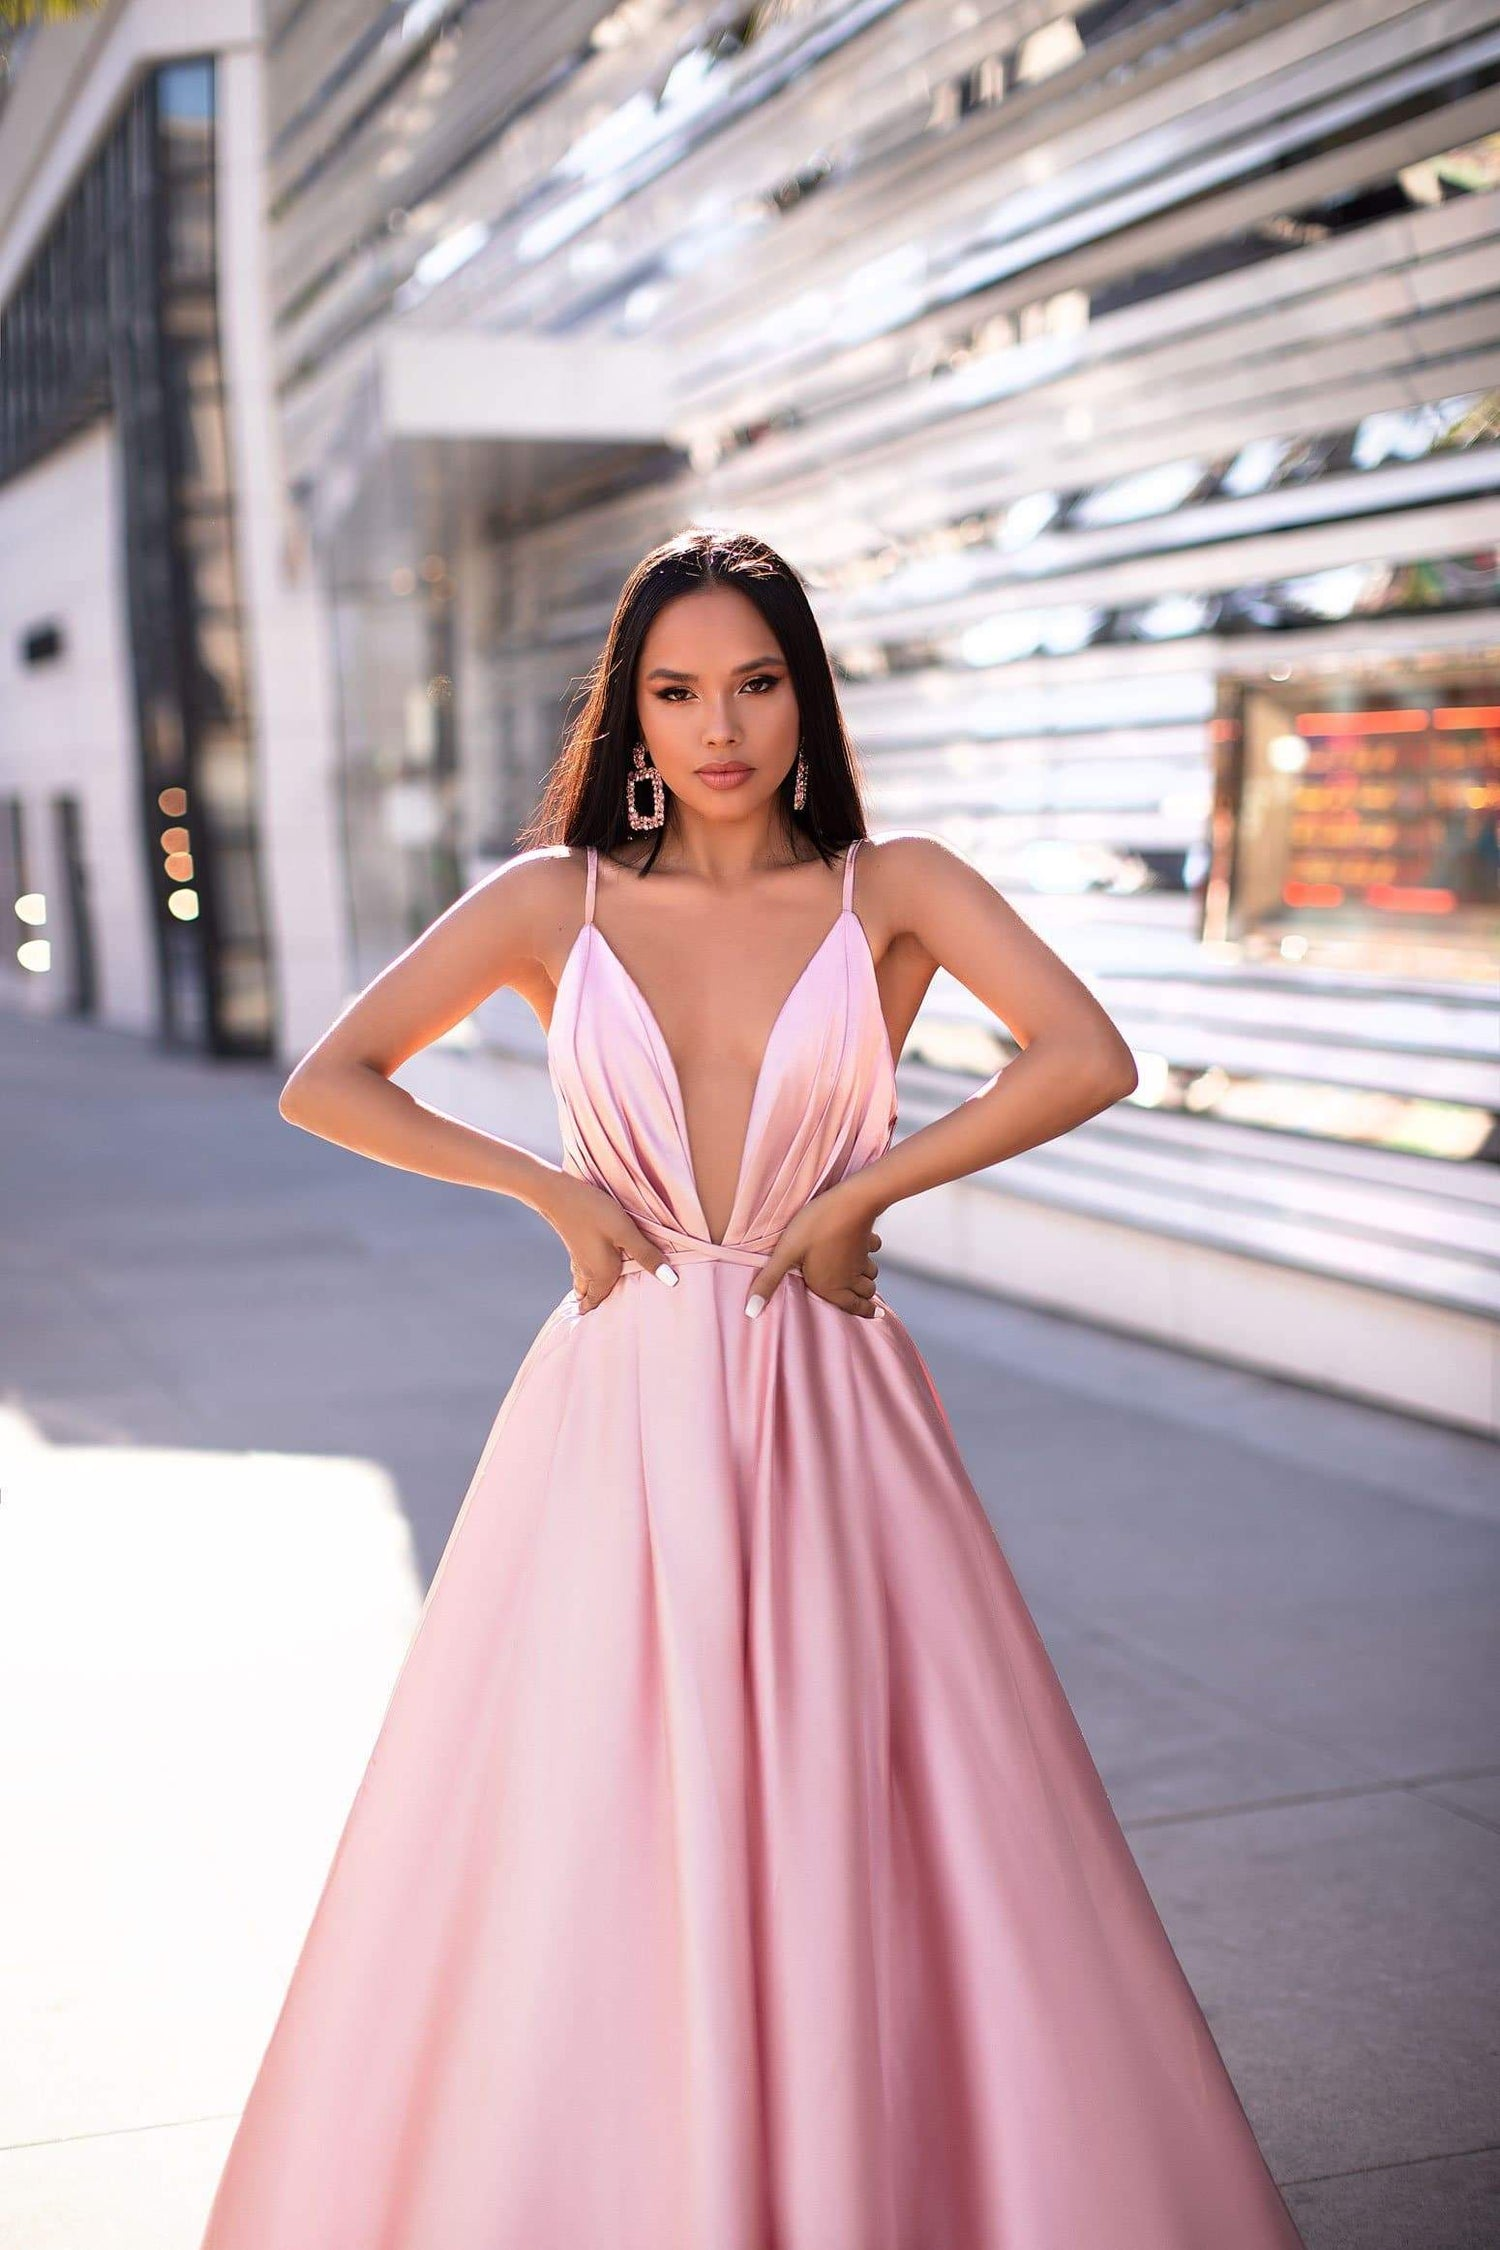 A&N Luxe Ayana Gown - Baby Pink Satin With V Neck & Long Train